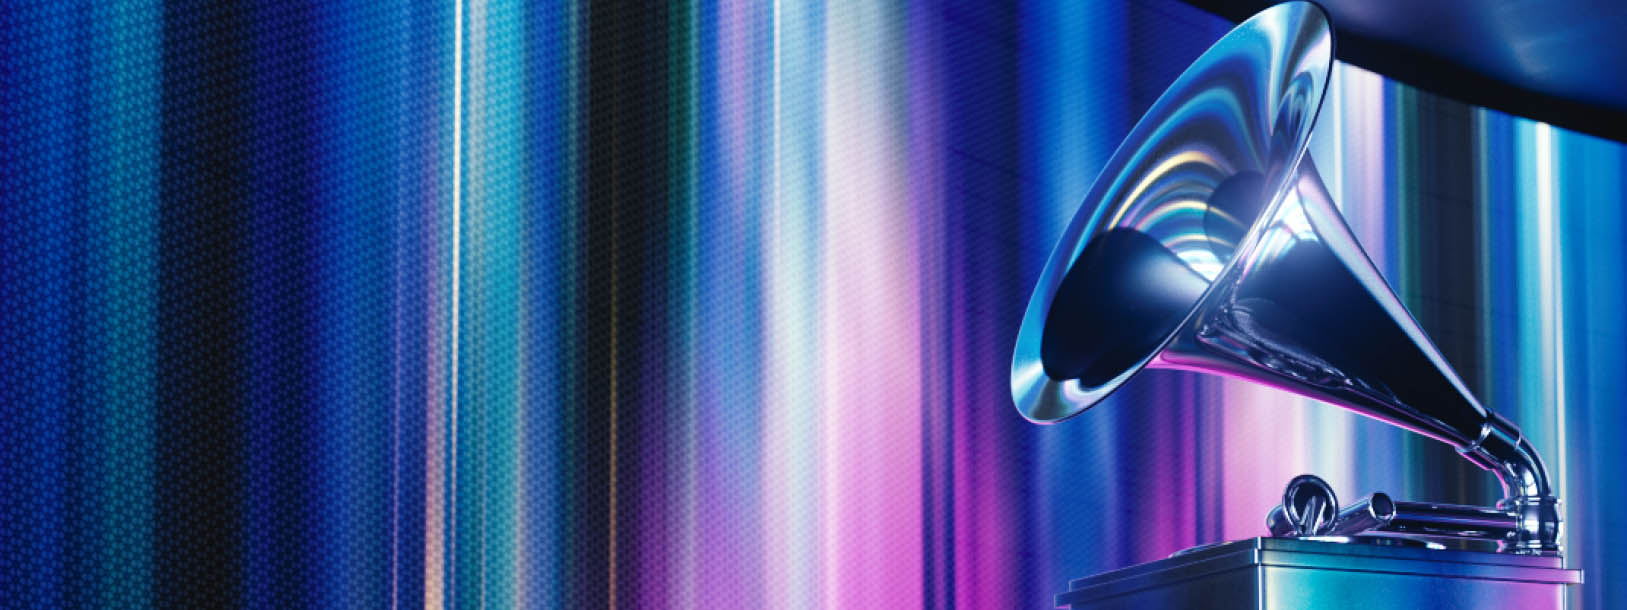 Latin Recording Academy Announce 21st Annual Latin GRAMMY Awards Nominees